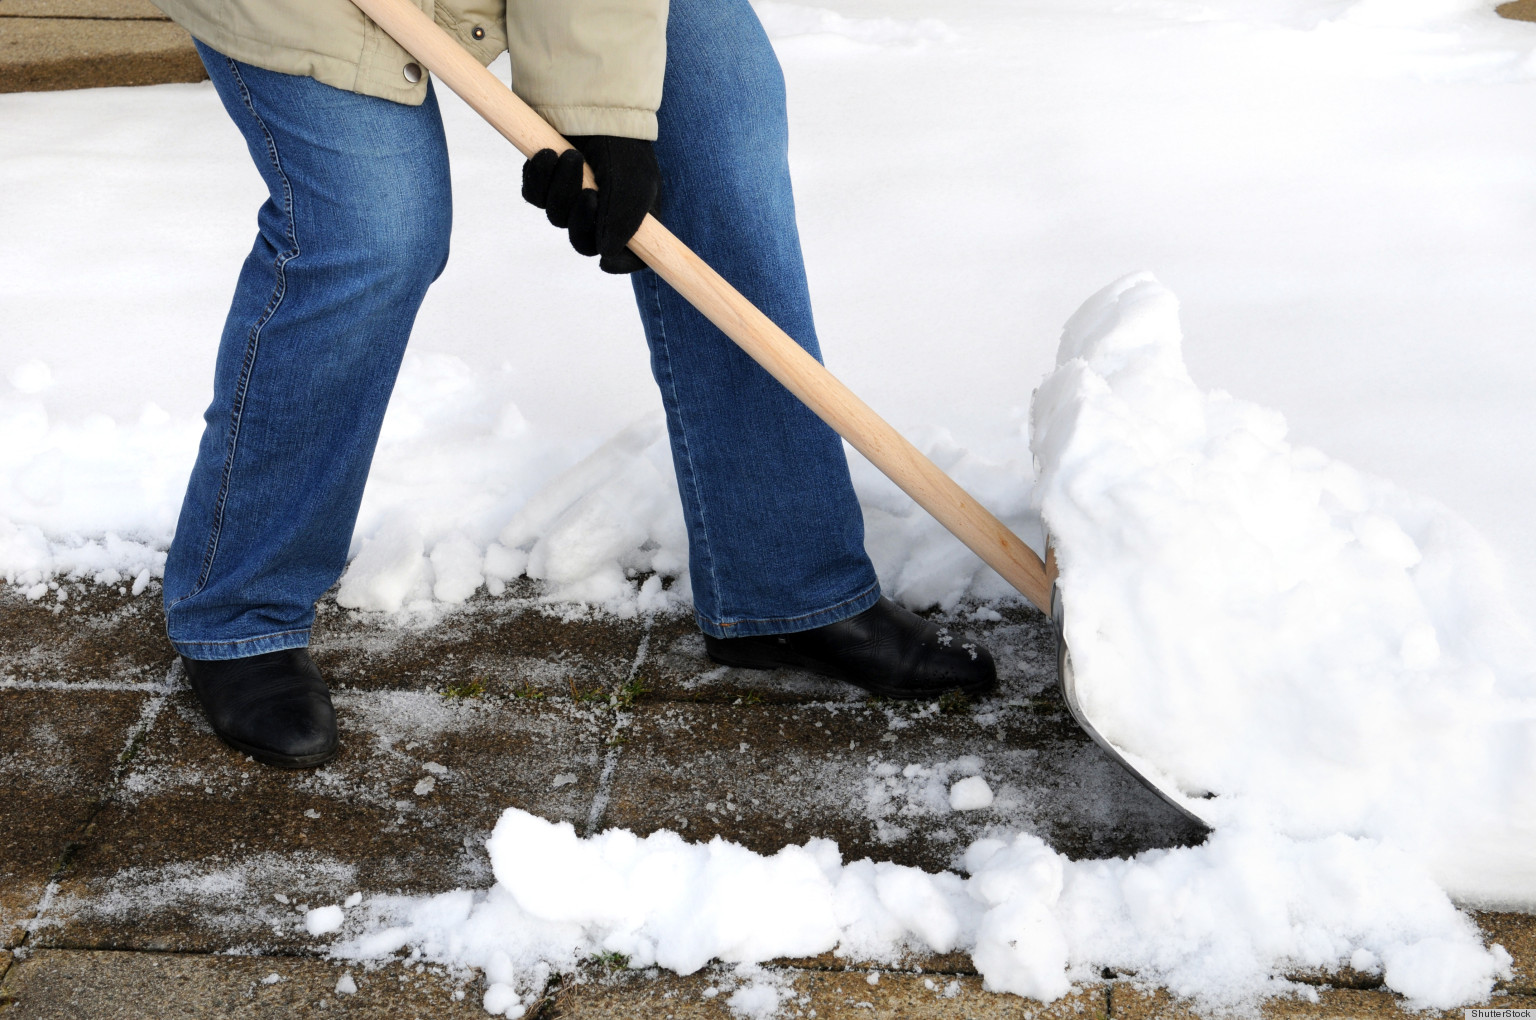 o-EASIEST-WAY-TO-SHOVEL-SNOW-facebook